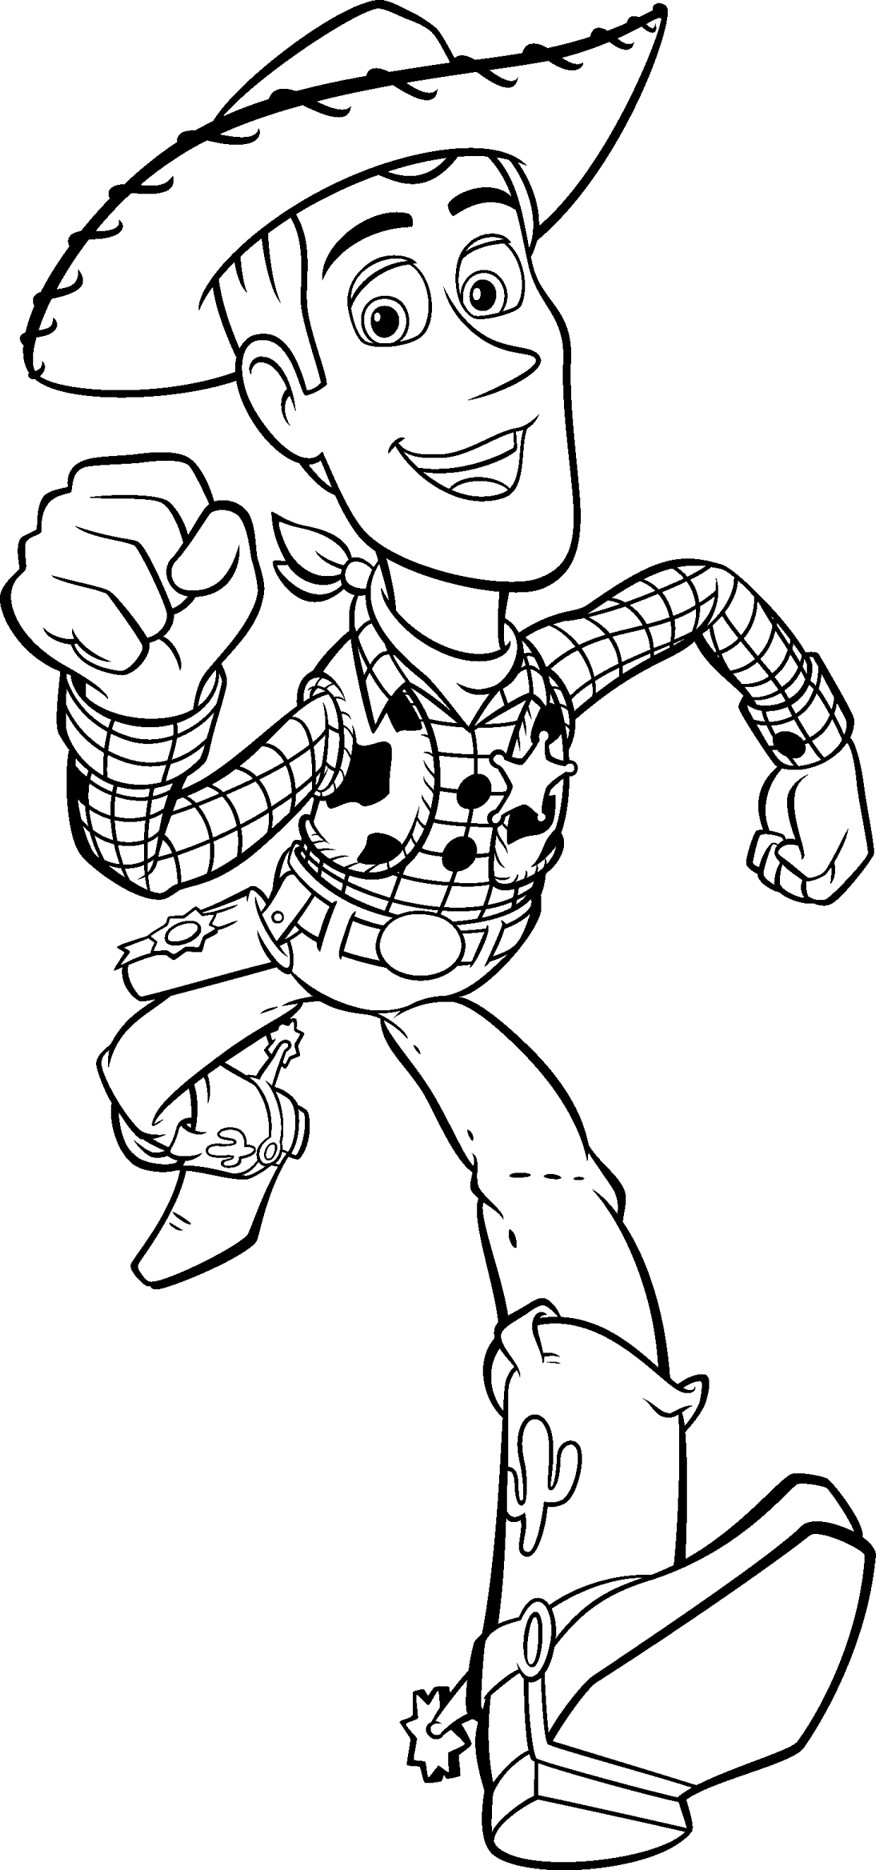 Best ideas about Coloring Book For Kids Disney . Save or Pin Free Printable Toy Story Coloring Pages For Kids Now.